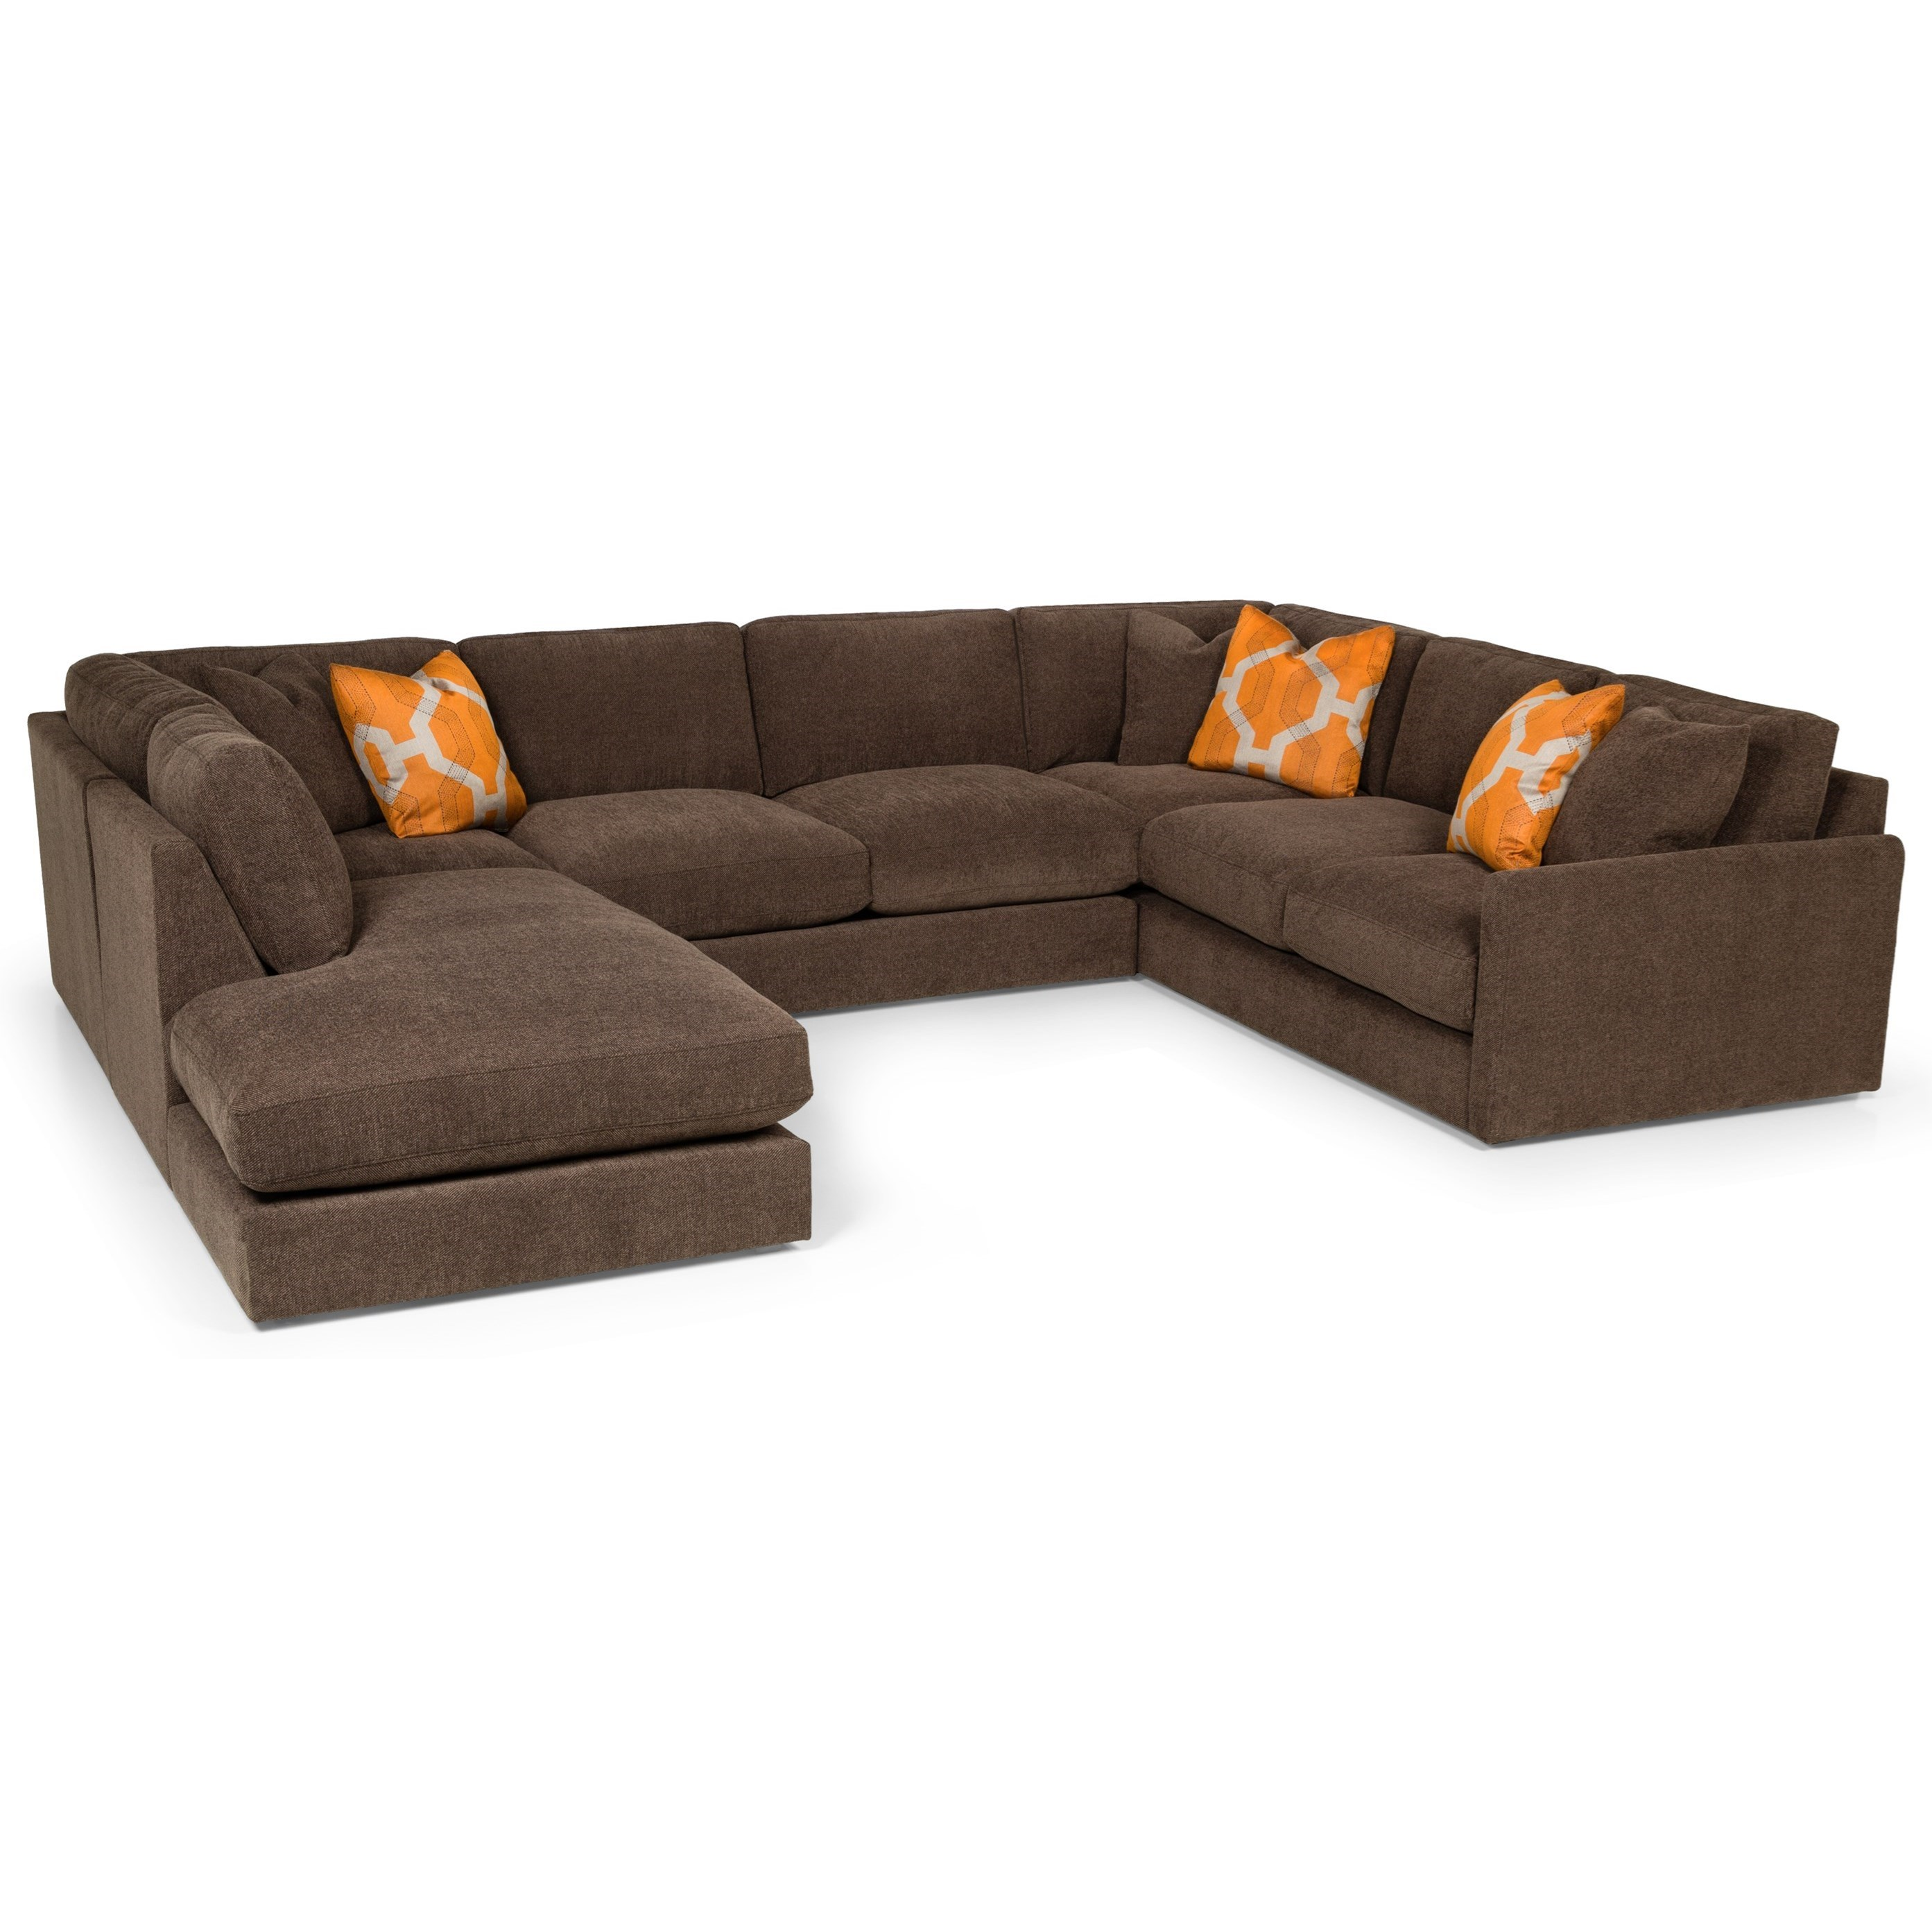 Stanton 369 Casual Sectional Sofa with Bumper Chaise Rife s Home